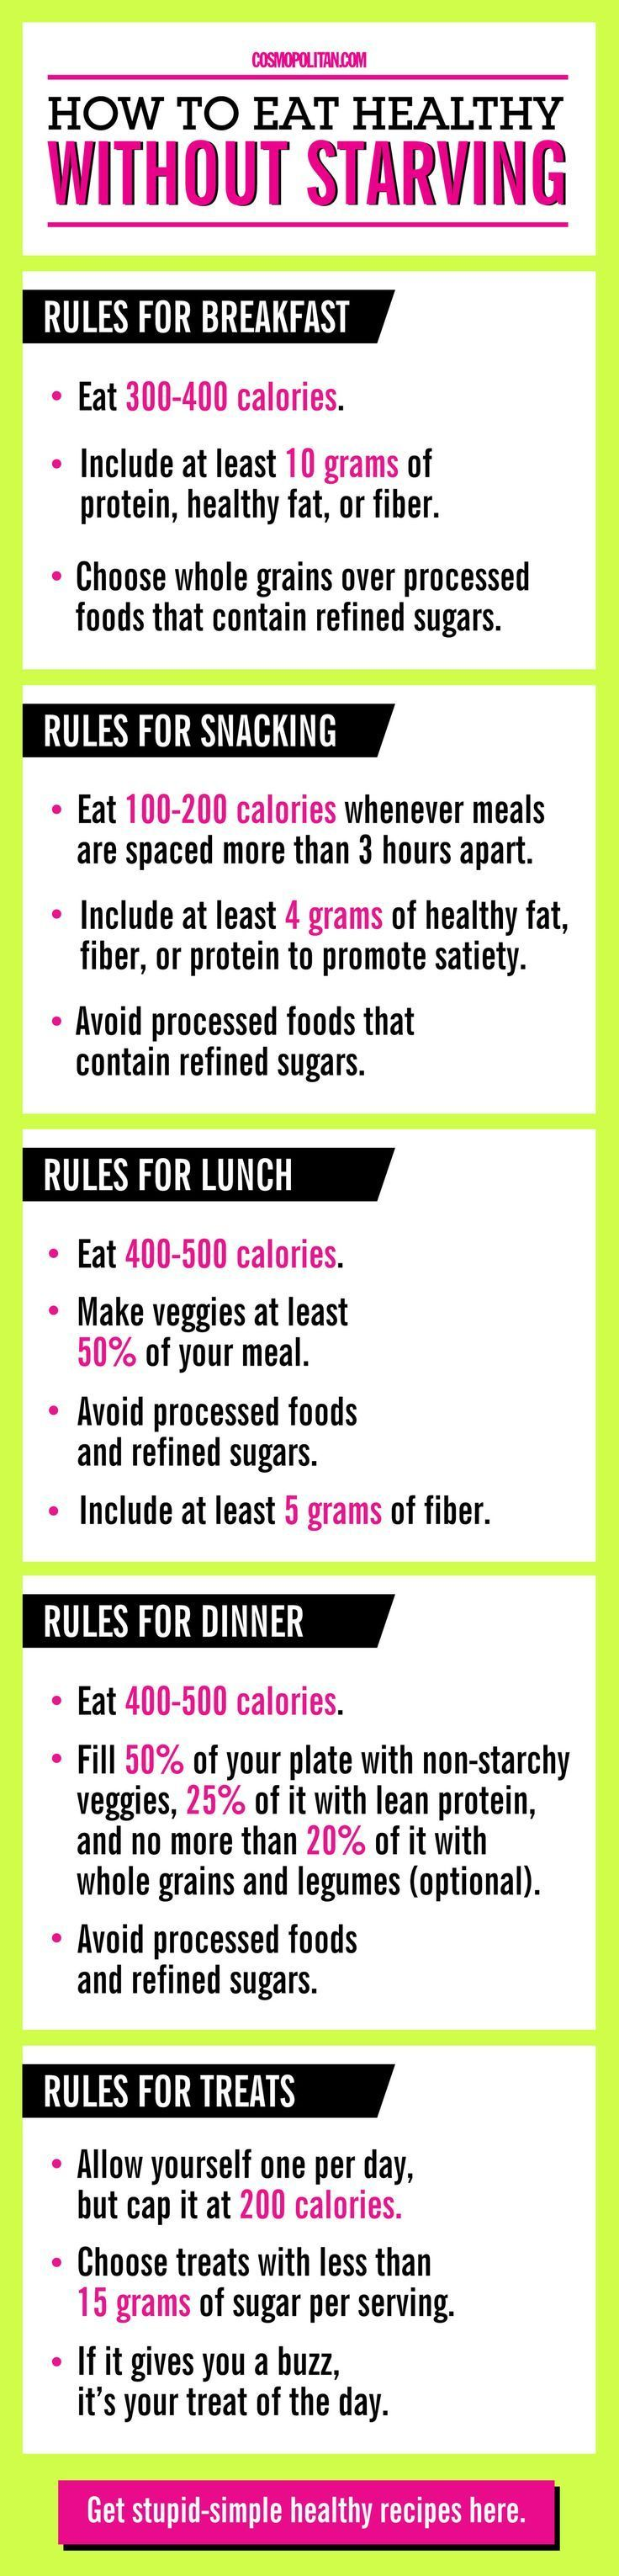 These clean eating tips are perfect for the beginner, or if you've fallen off track. Use an app like My Fitness Pal if you want to track your macros/calories (scheduled via http://www.tailwindapp.com?utm_source=pinterest&utm_medium=twpin&utm_content=post1